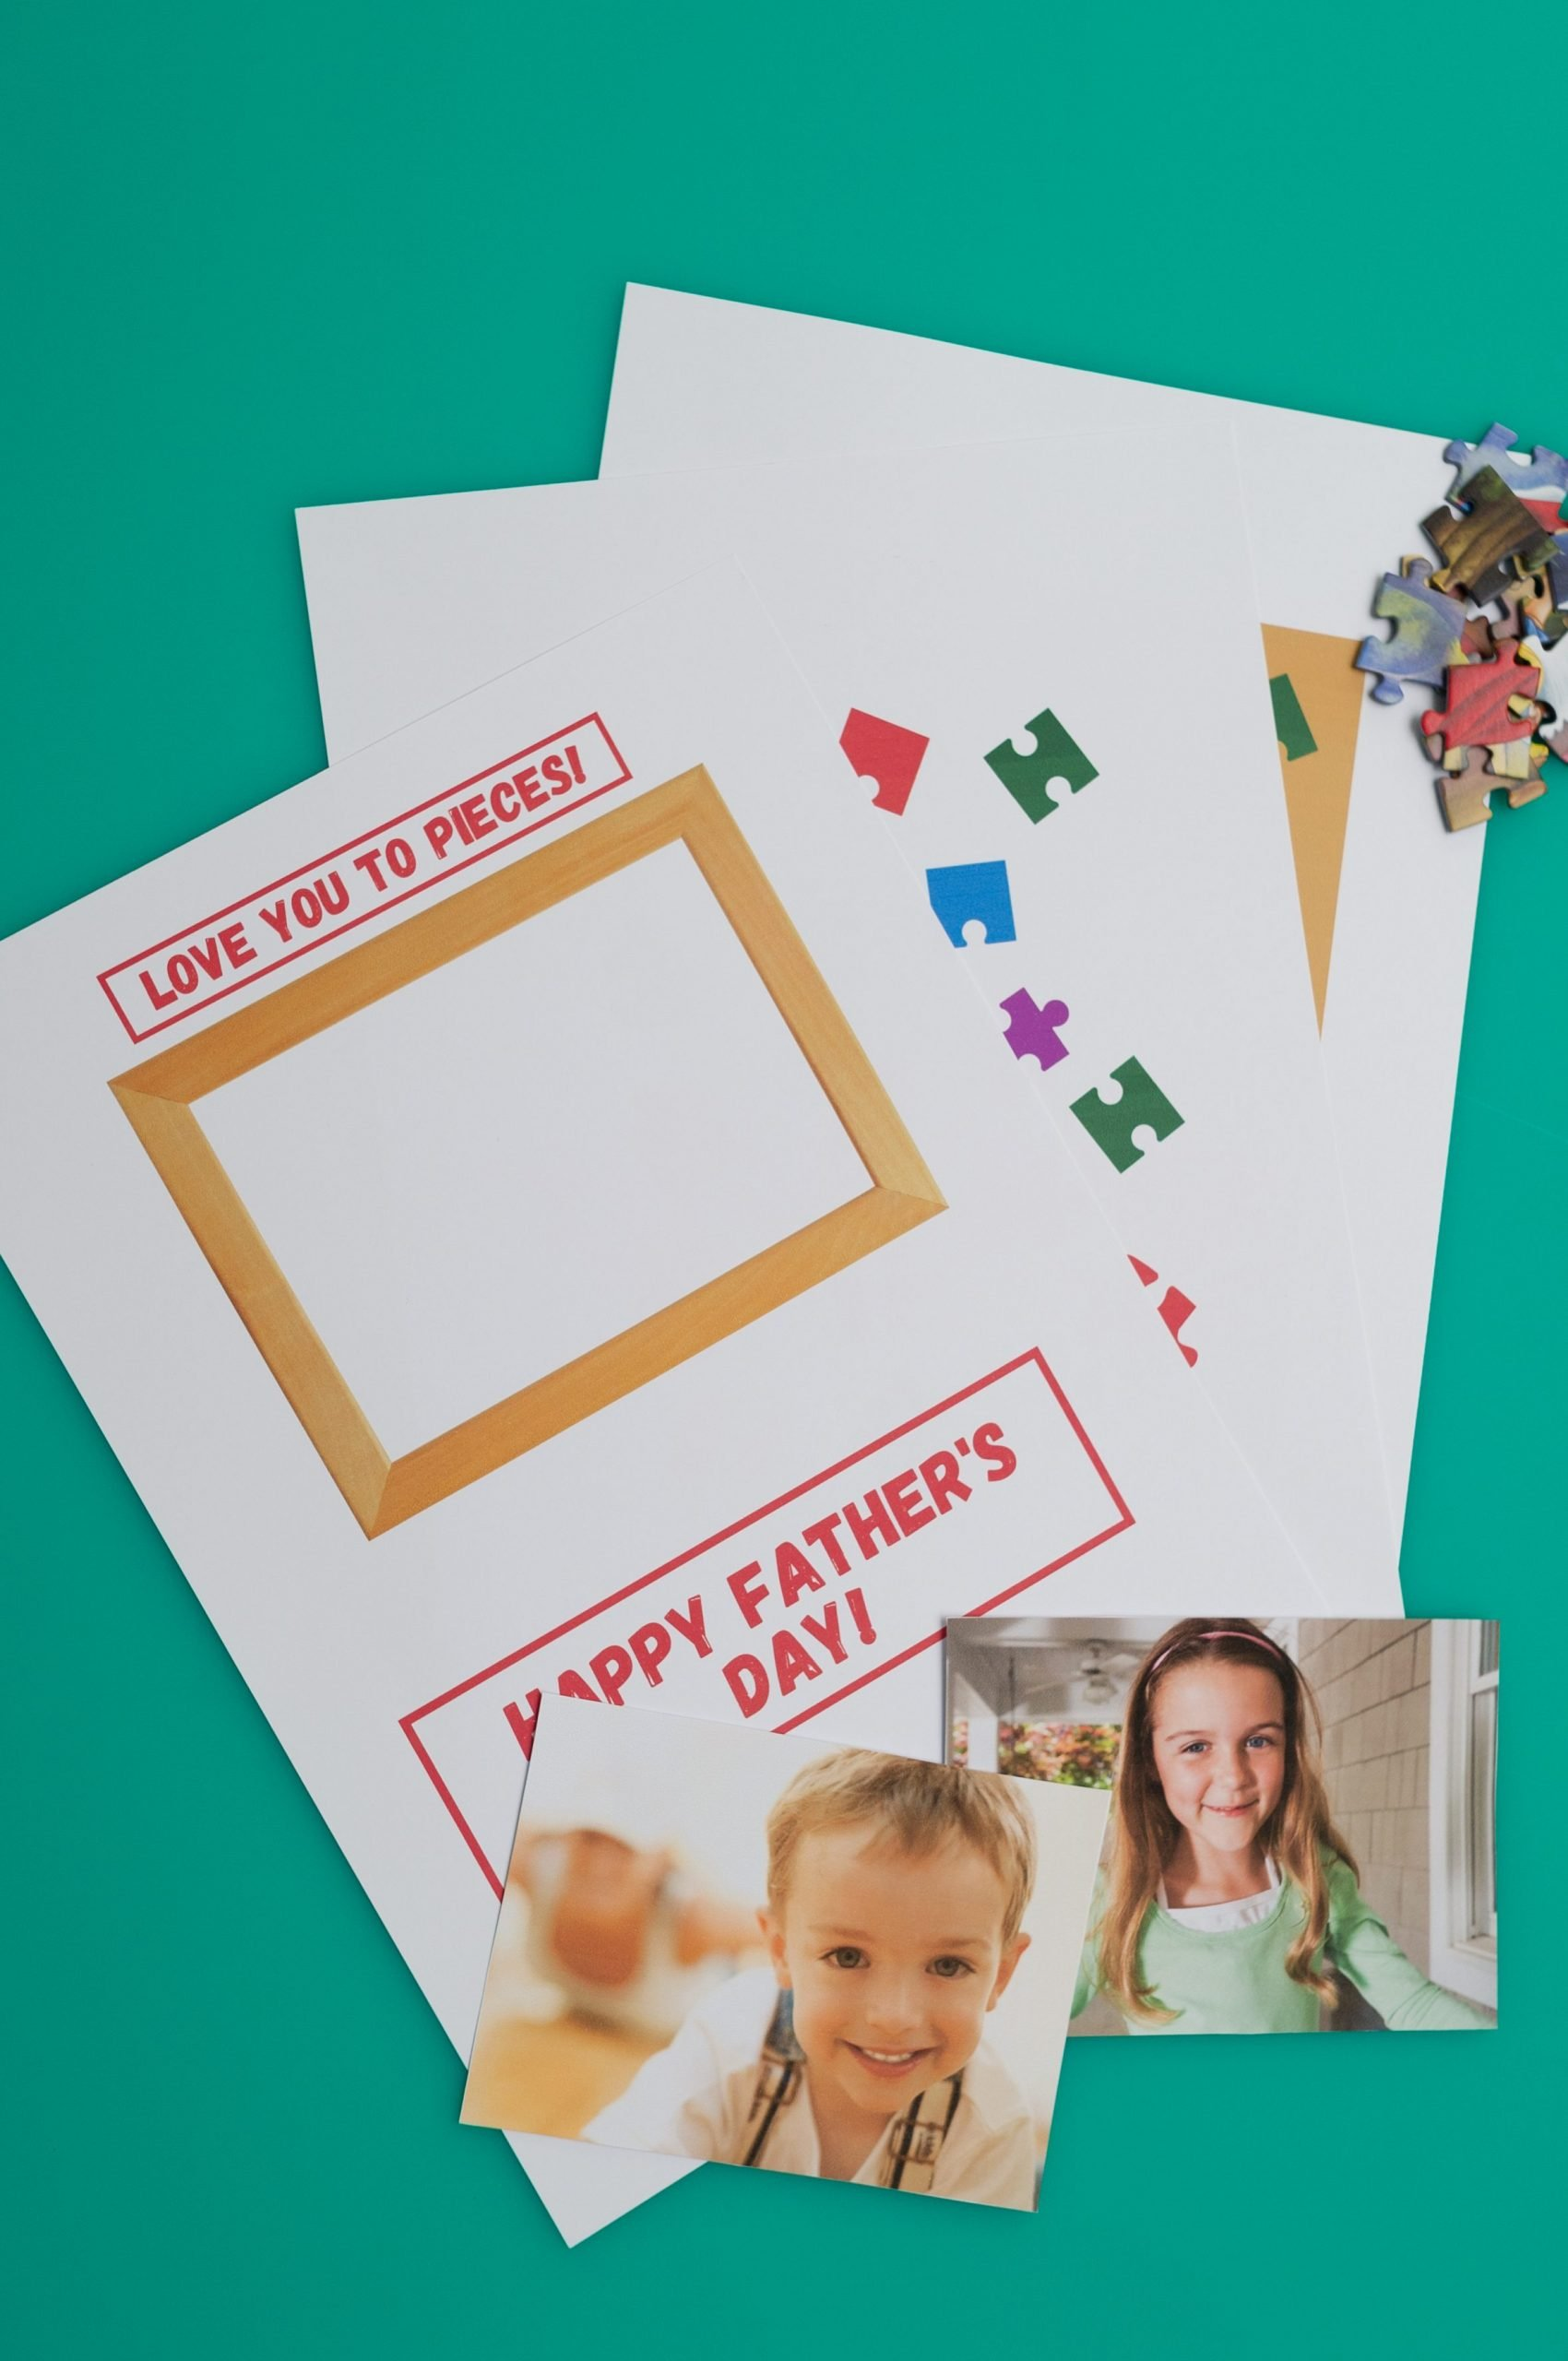 Father's Day card template, photos and puzzle pieces